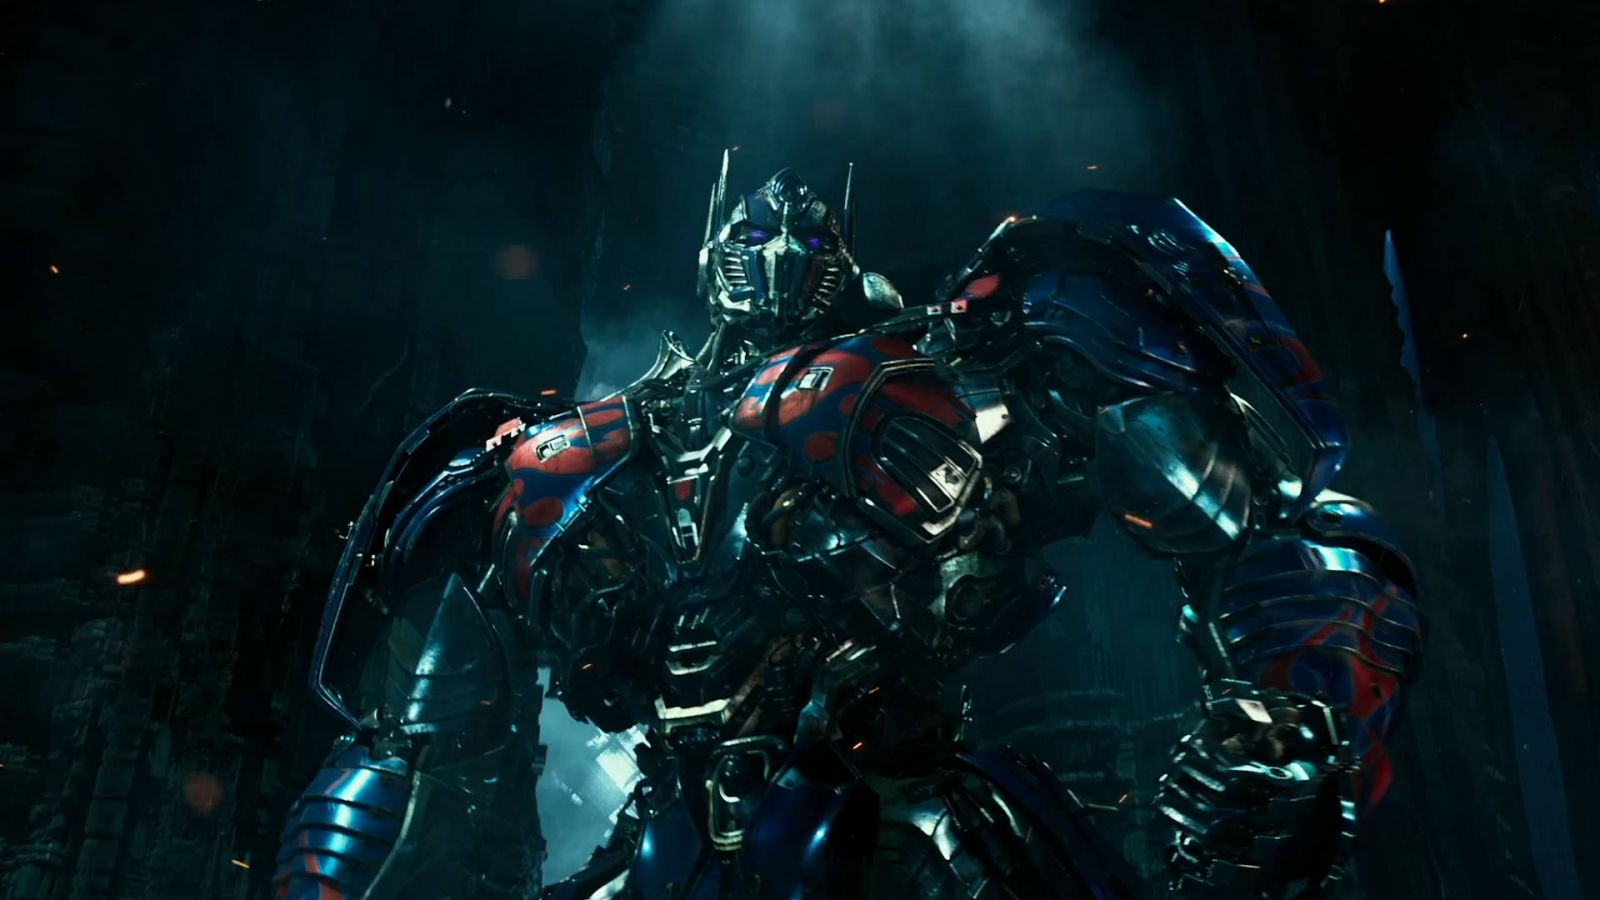 Transformers The Last Knight Review We Regret To Inform You